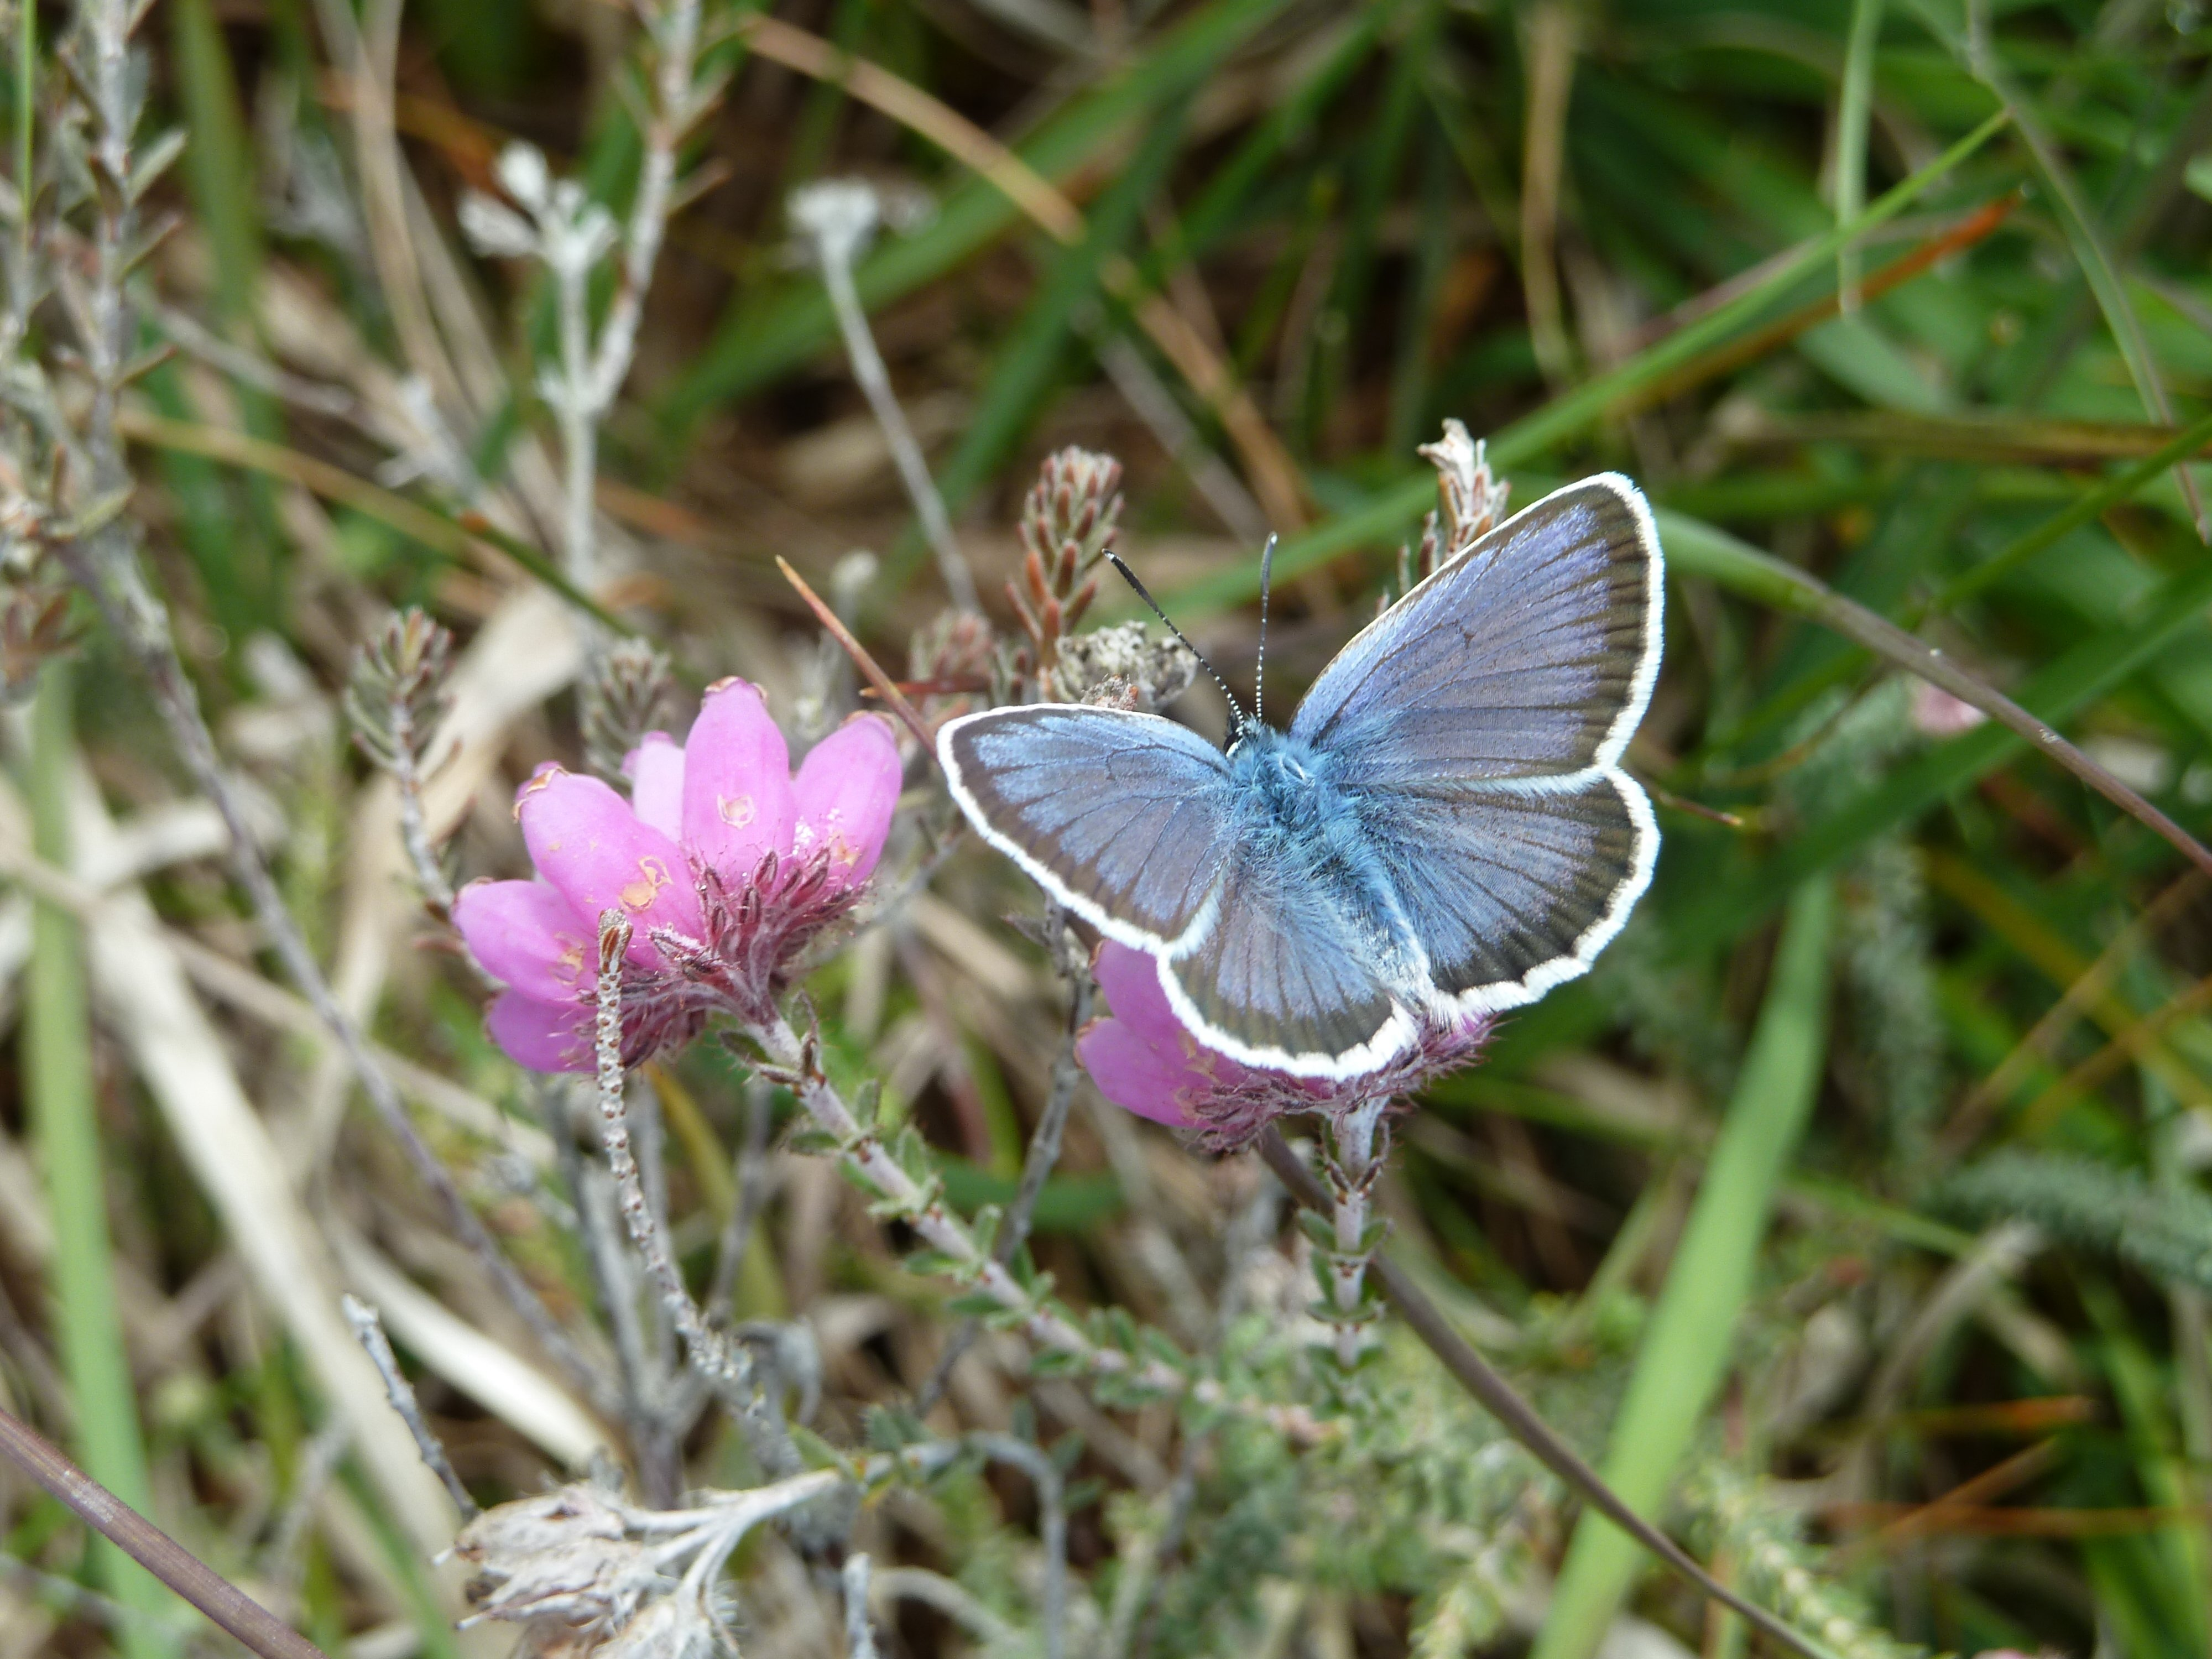 Male silverstudded blue butterfly at Strodgemoor Bottom